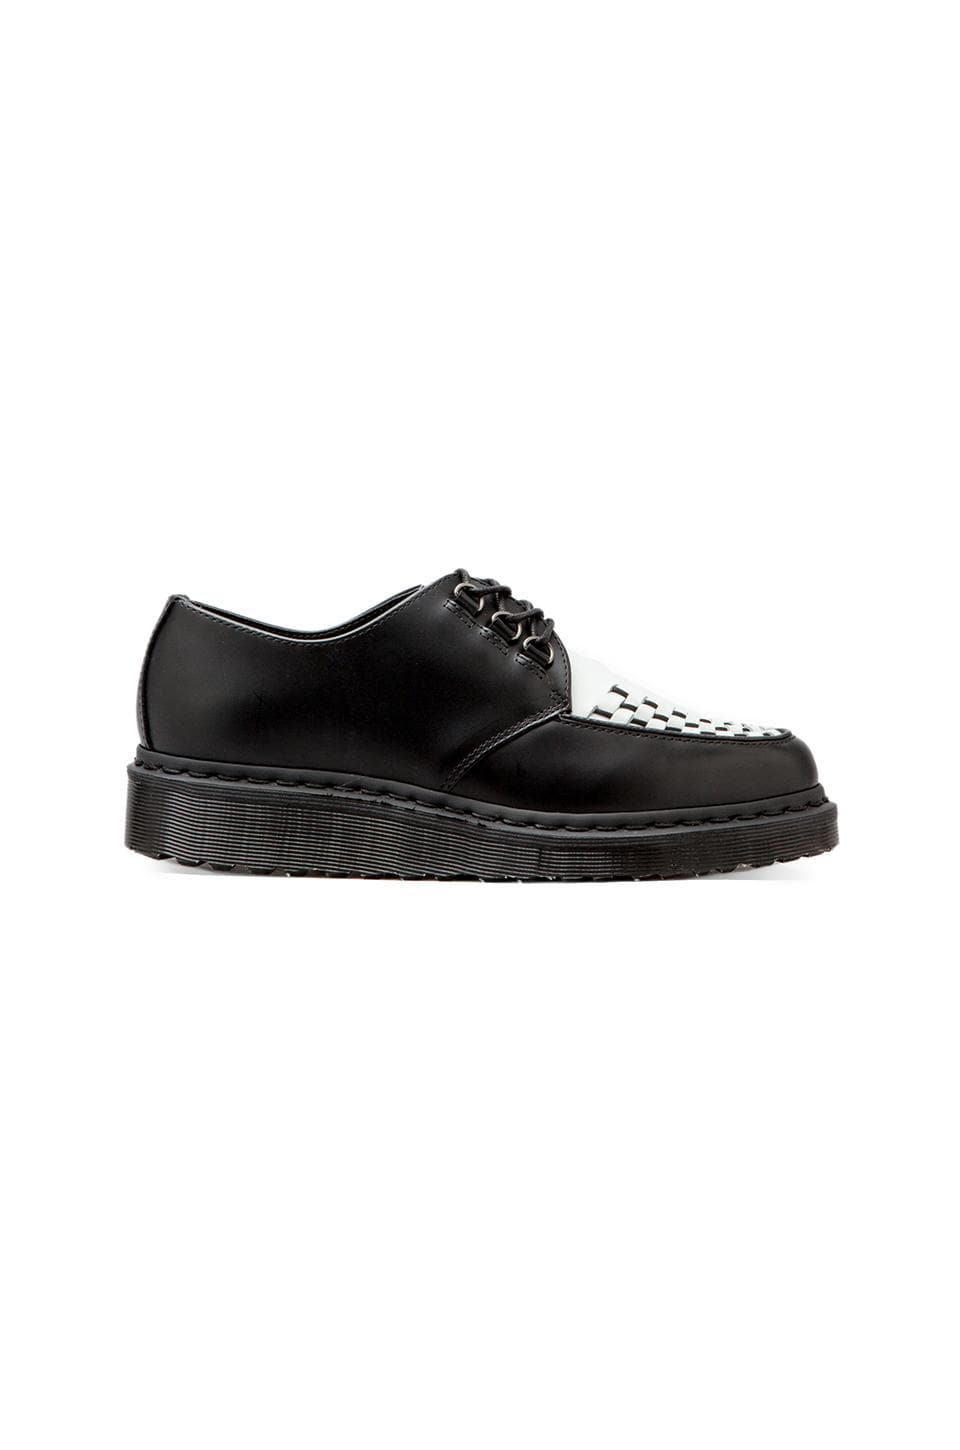 Dr. Martens Beck Creeper in Black & White